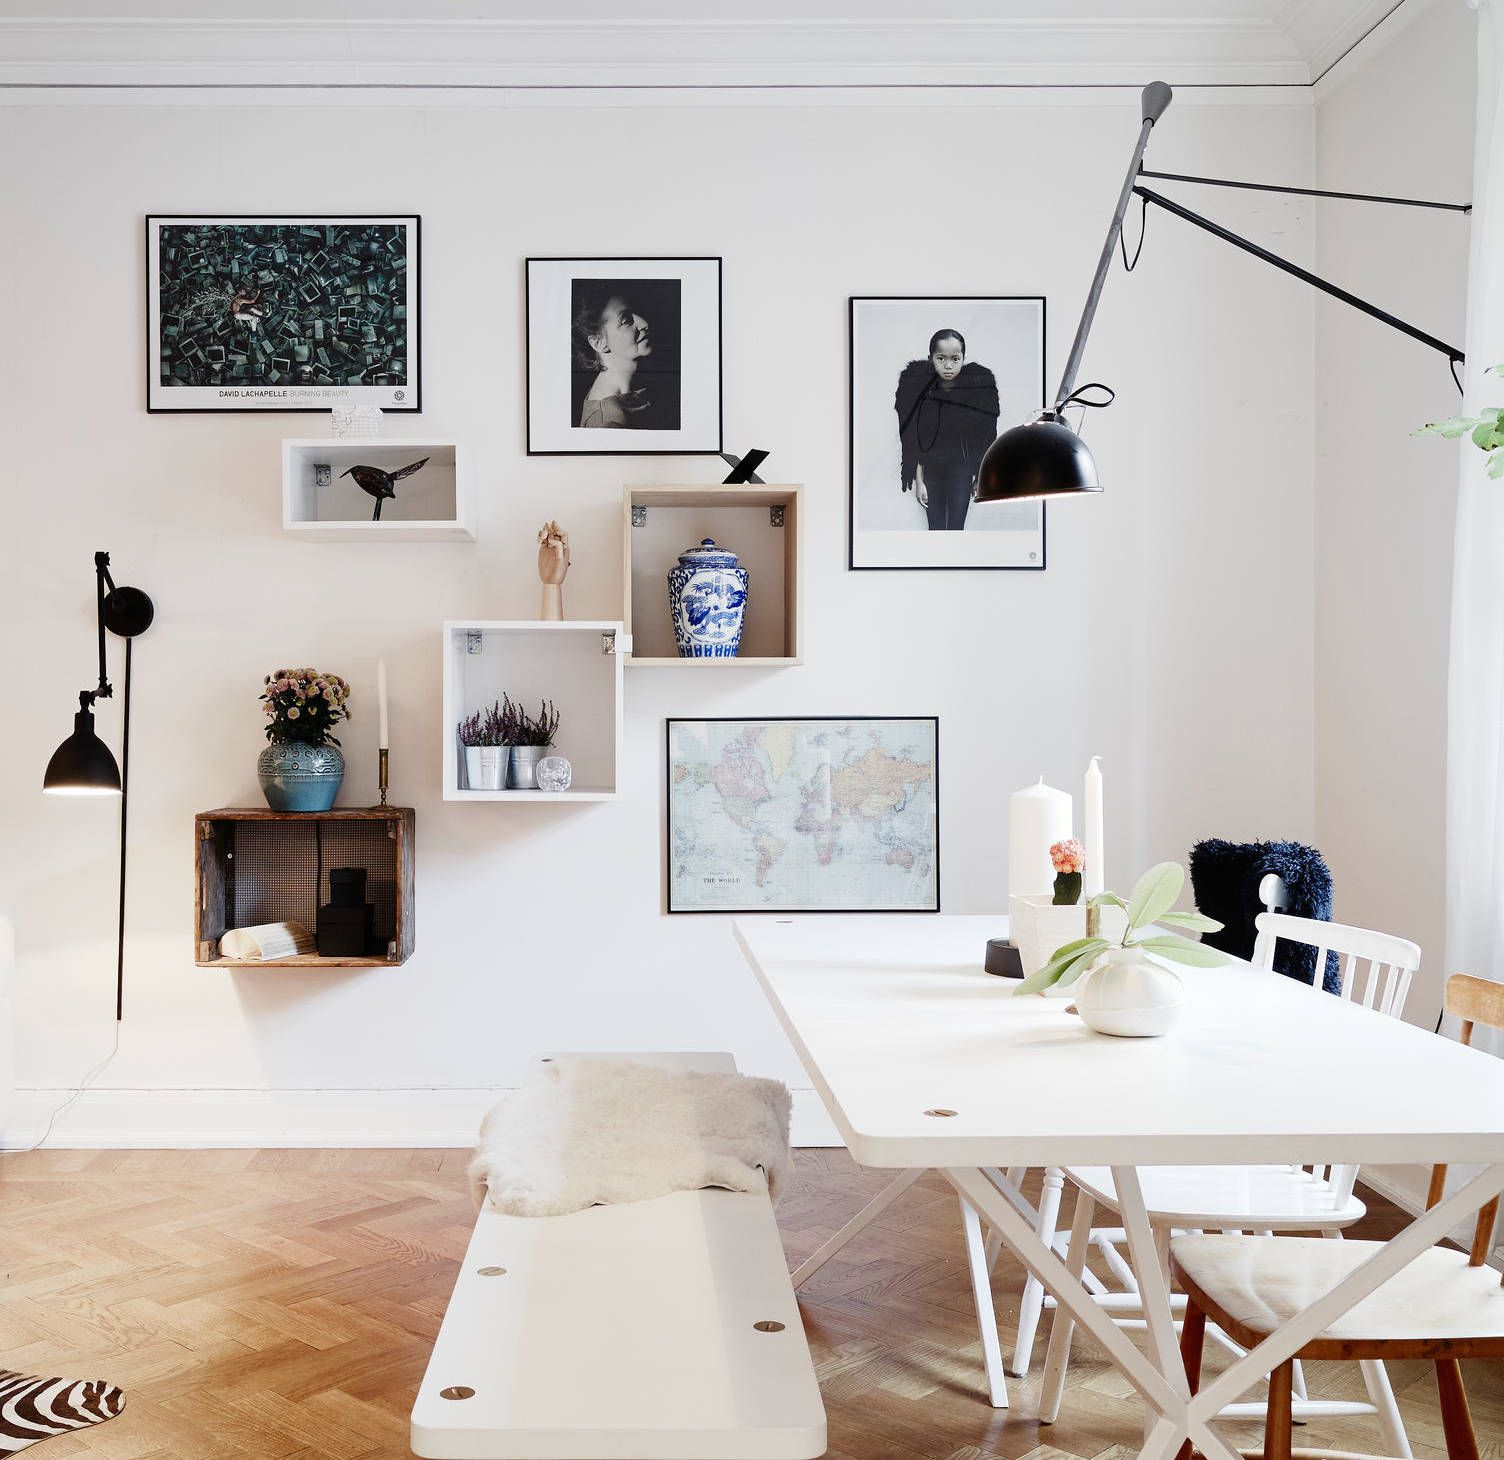 Rooms With Lines: Living Room With Different Angles And Lines